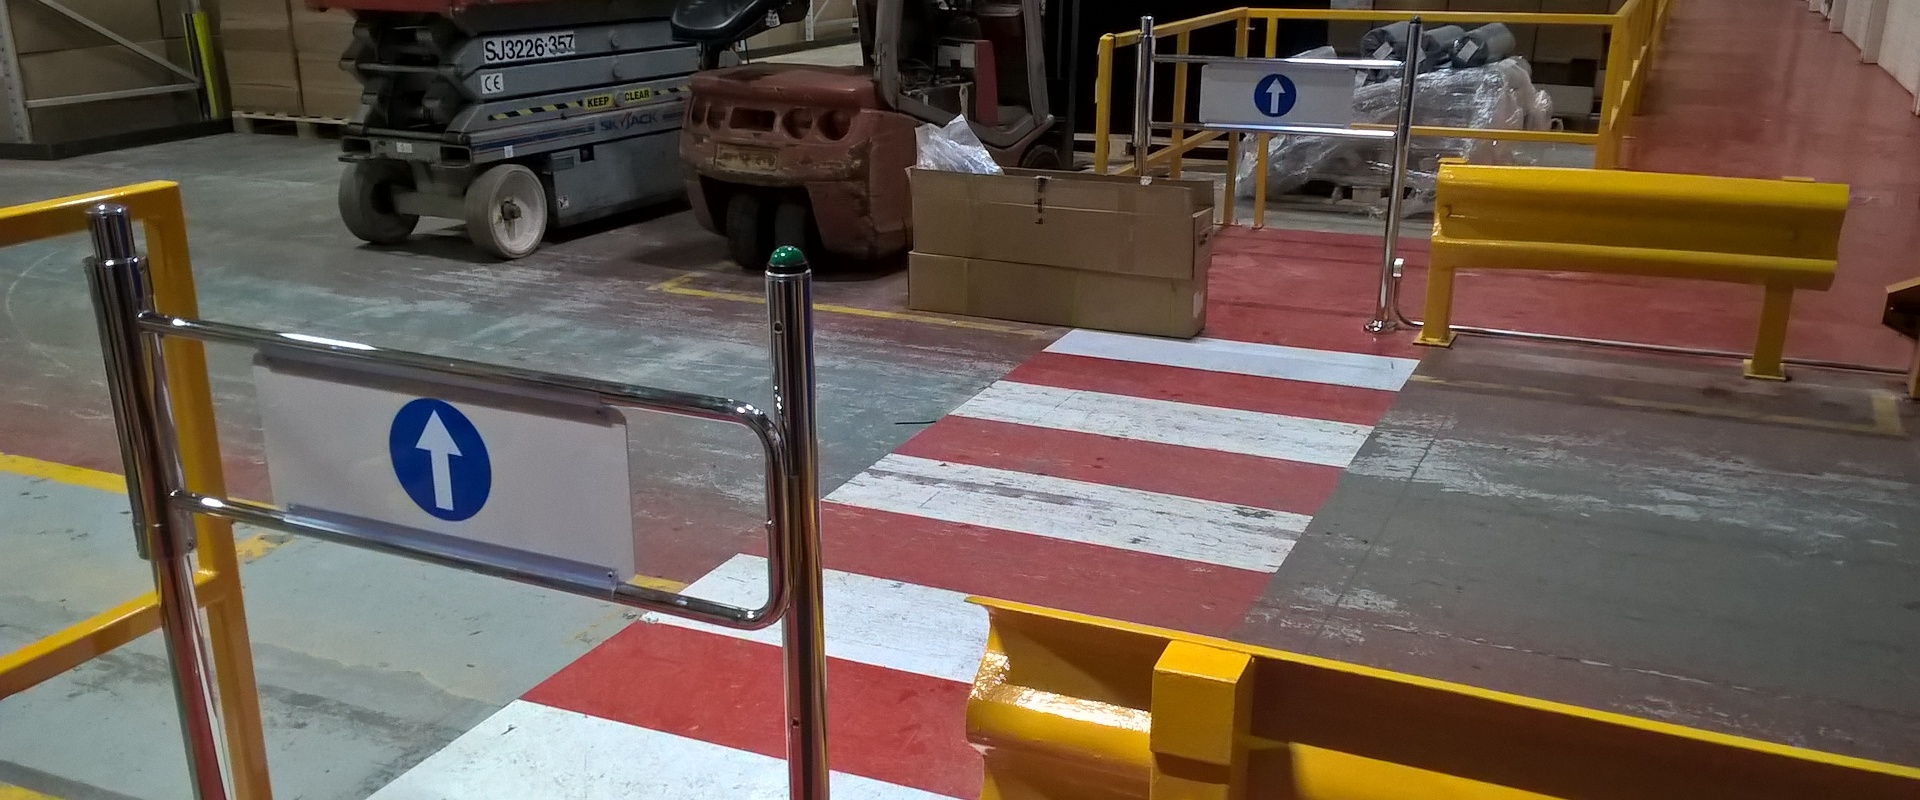 Photo of locking pedestrian safety gates in Armacell Manufacturing's warehouse